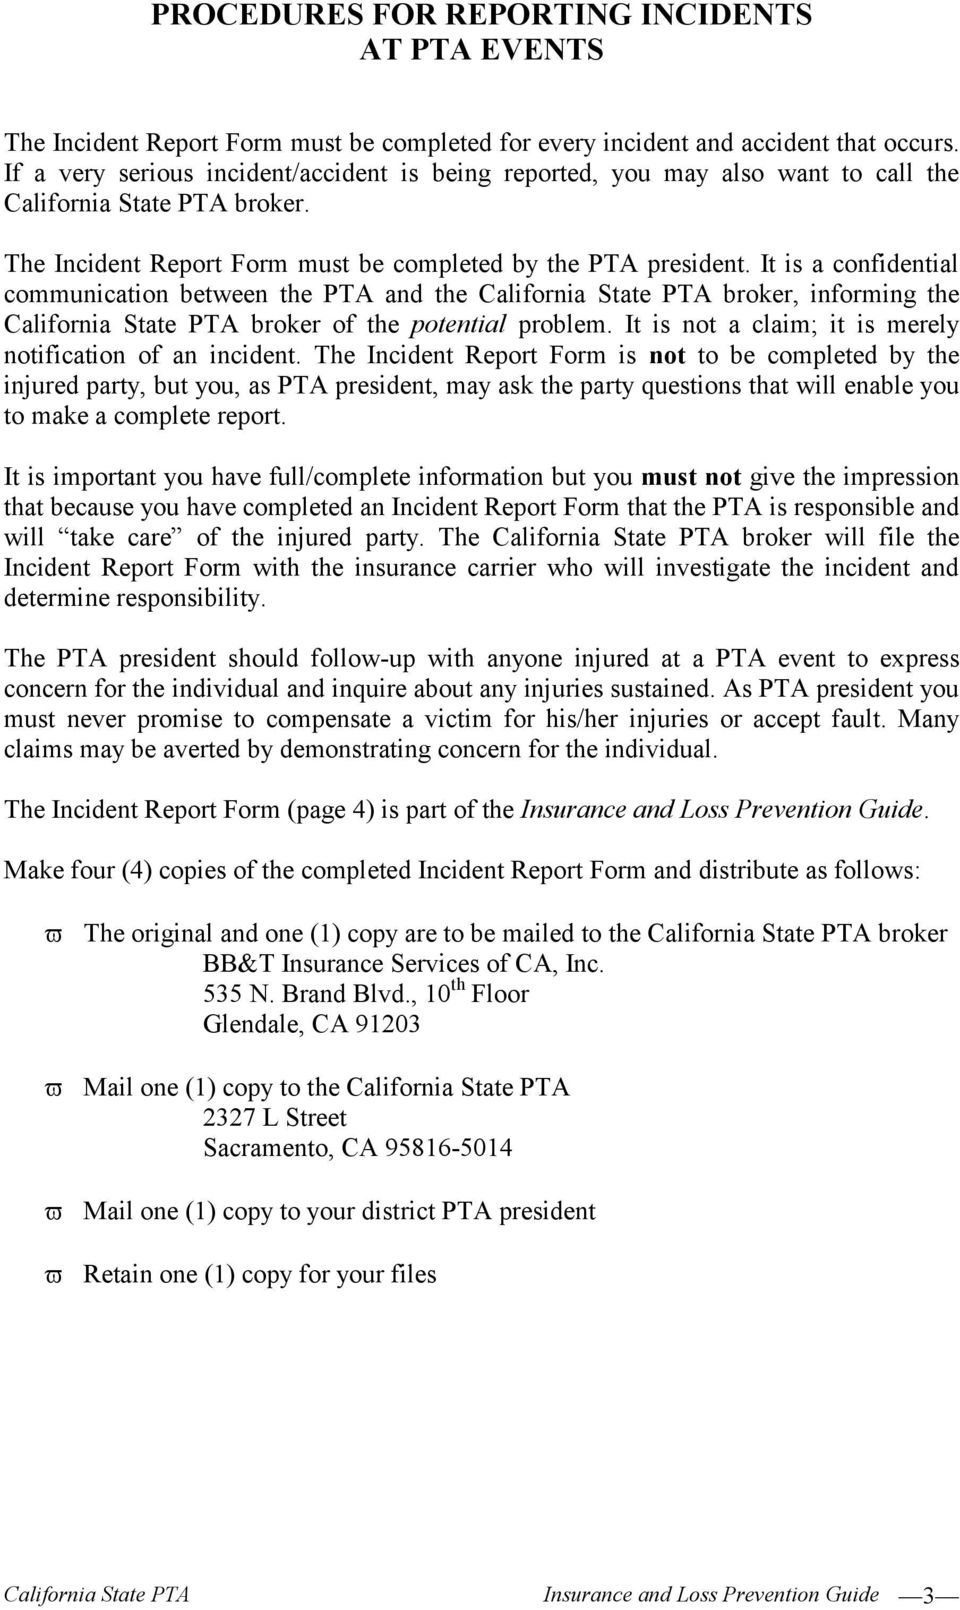 It is a confidential communication between the PTA and the California State PTA broker, informing the California State PTA broker of the potential problem.